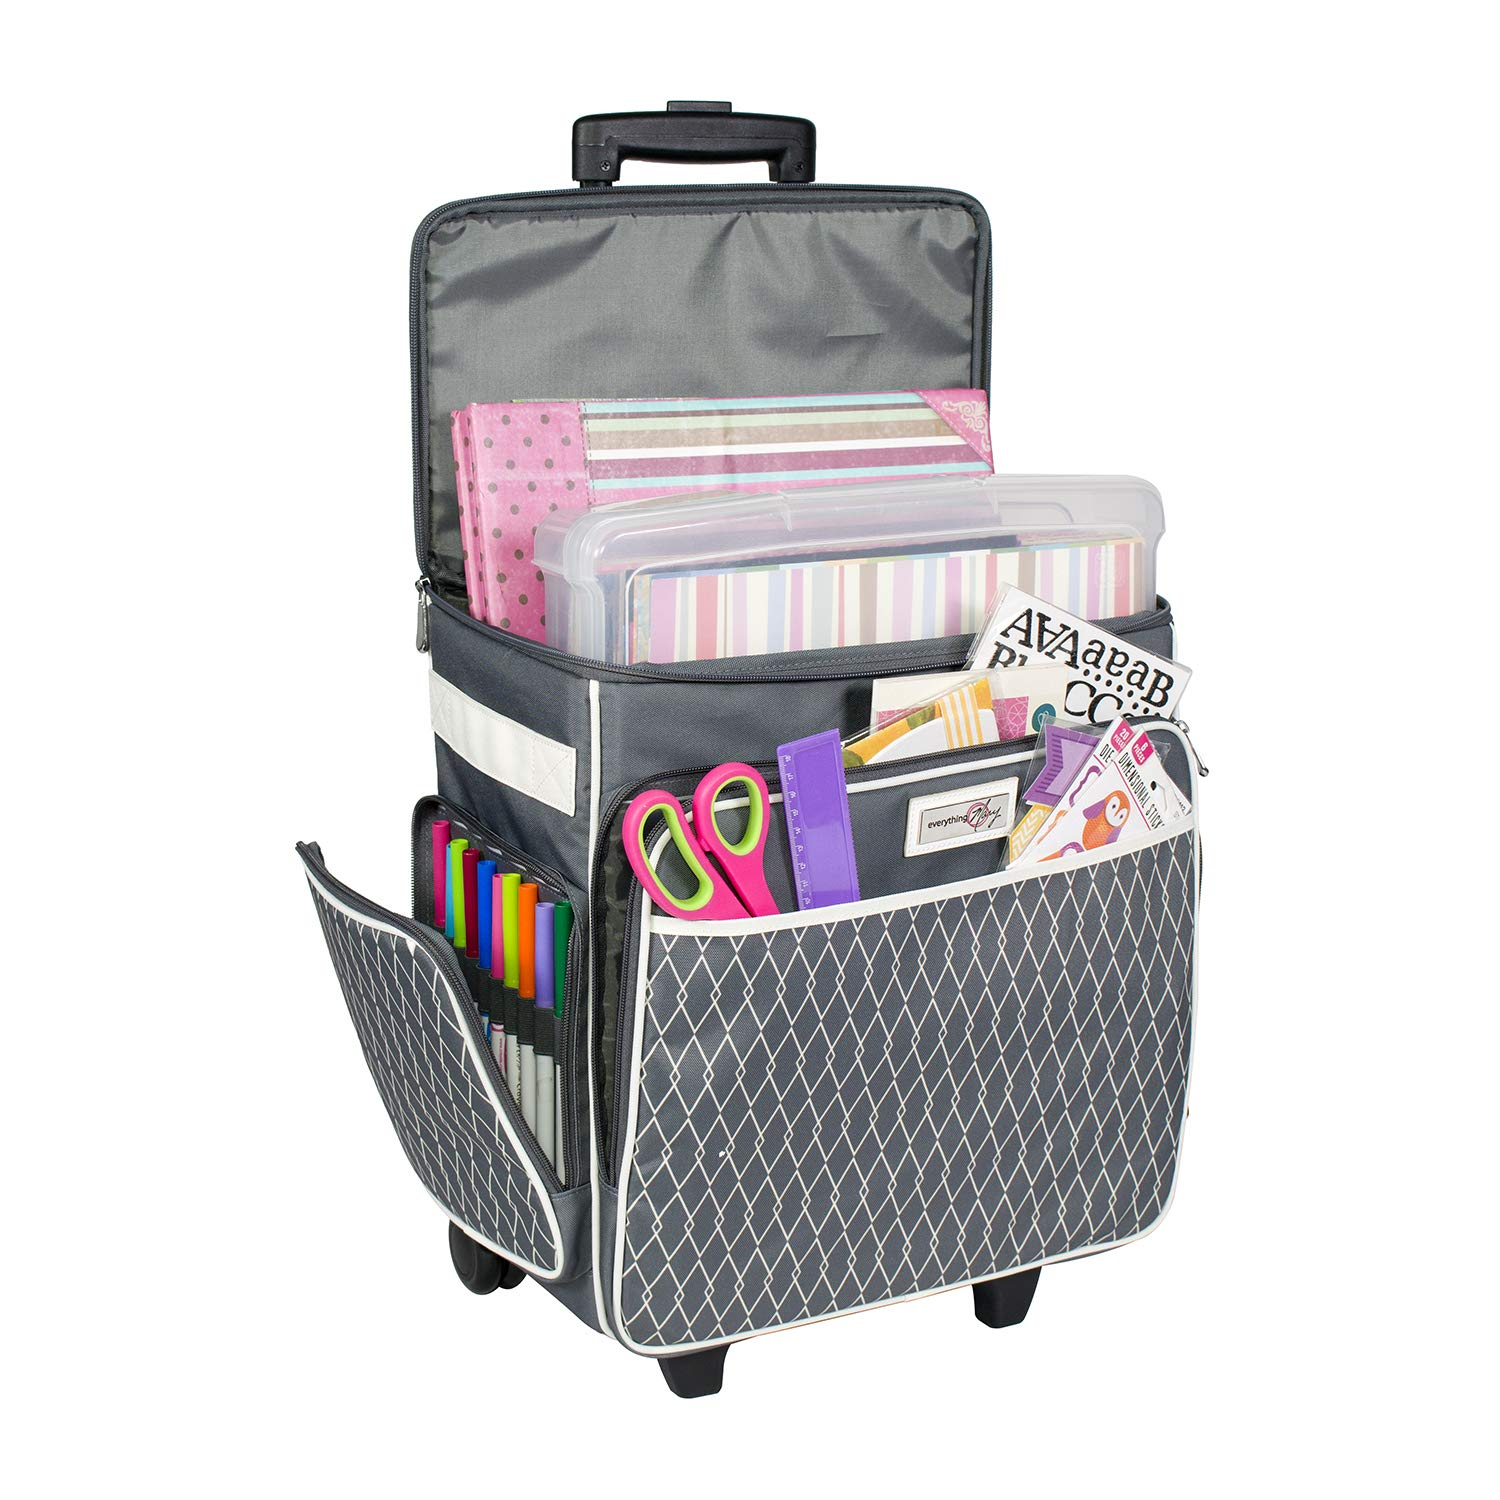 Everything Mary Grey & White Rolling Scrapbook Storage Tote - Scrapbooking Storage Case for Rings, Paper, Binder, Crafts, Beads, Paper, Scissors - Telescoping Handle with Dual Wheels - Craft Case by Everything Mary